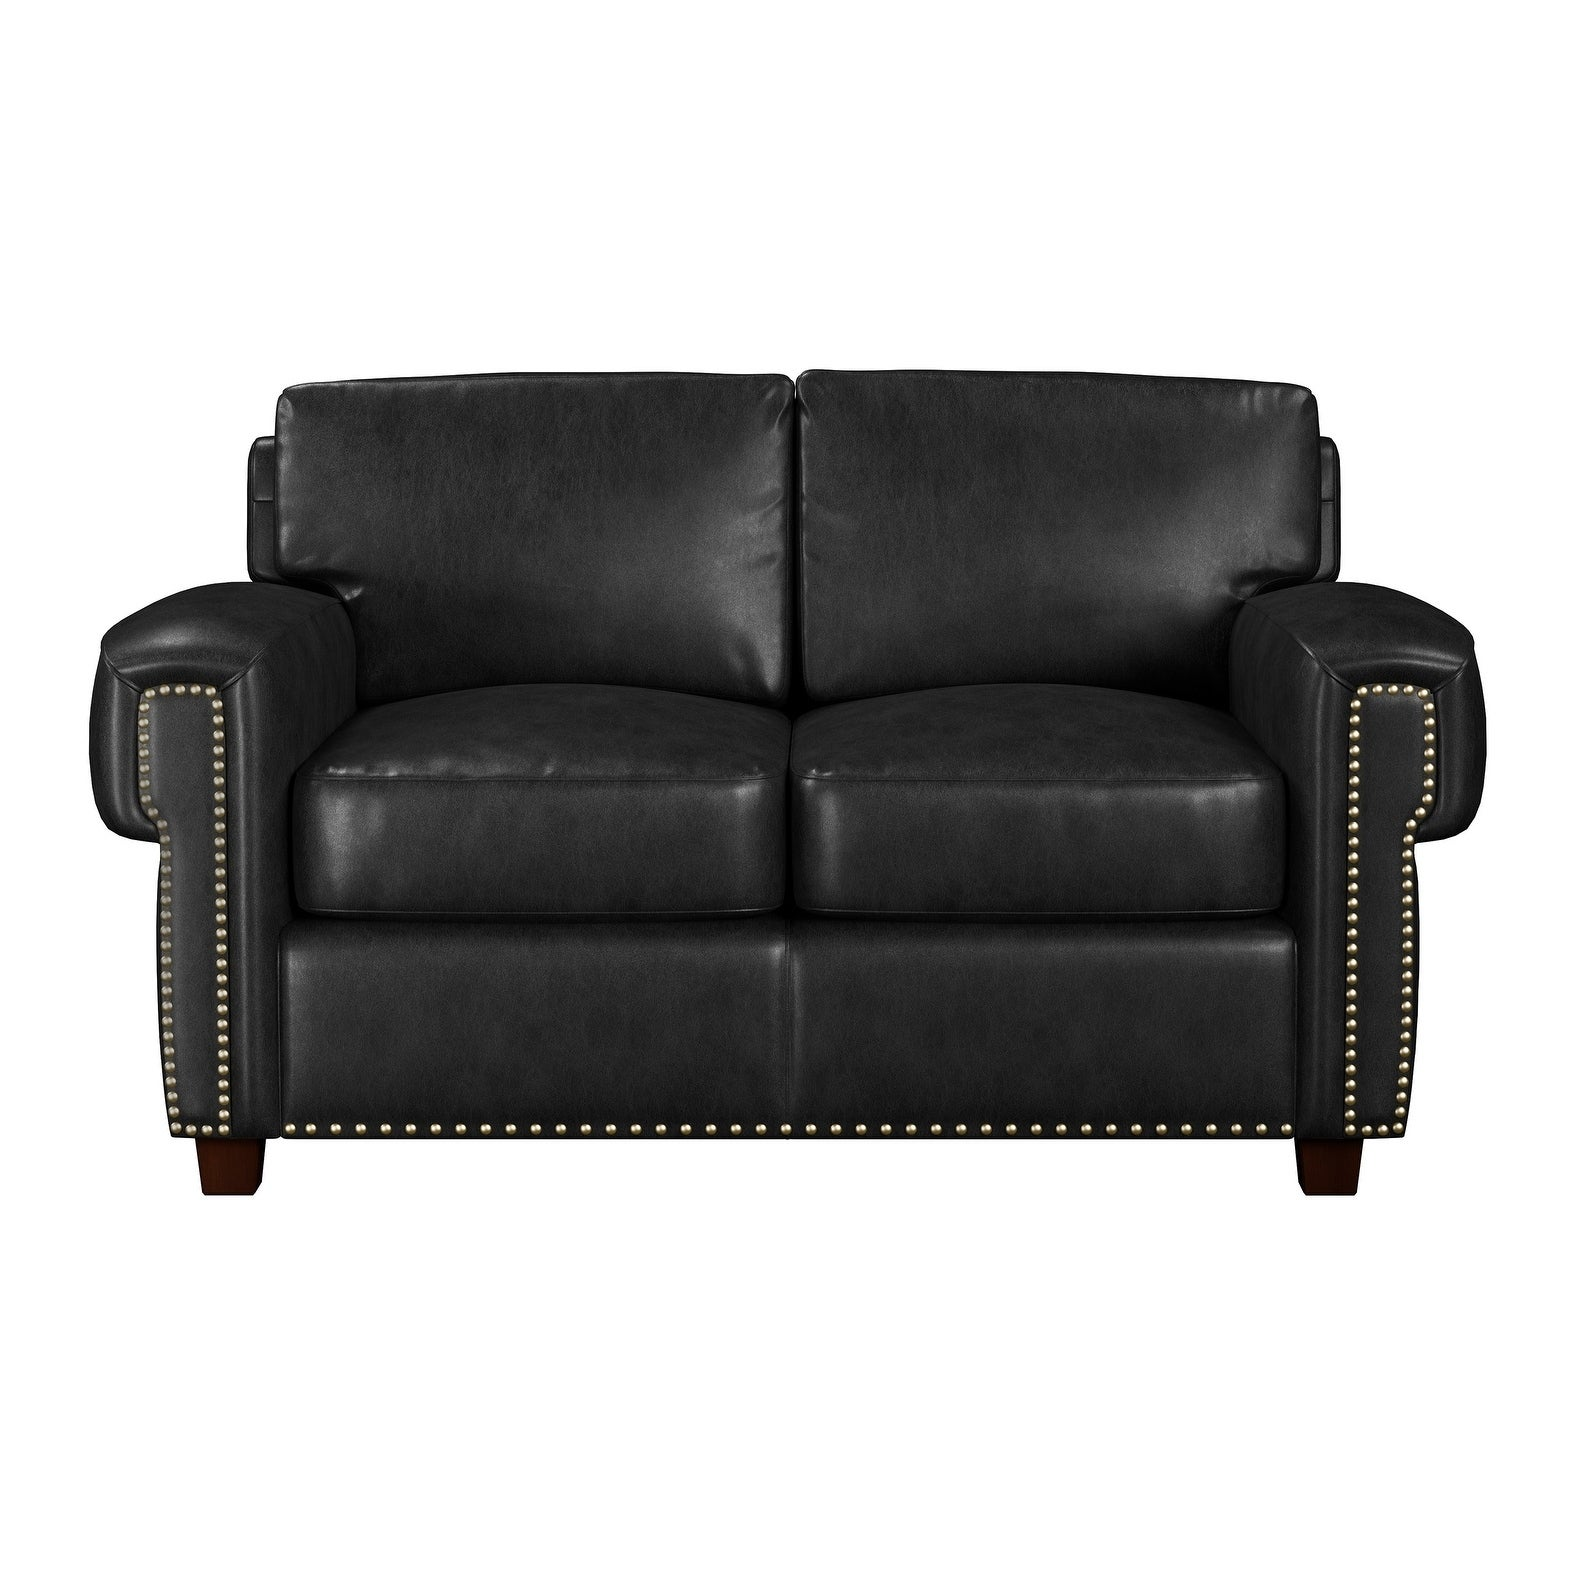 Shop Made to Order Como 100% Top Grain Leather Twin Sleeper Sofa ...